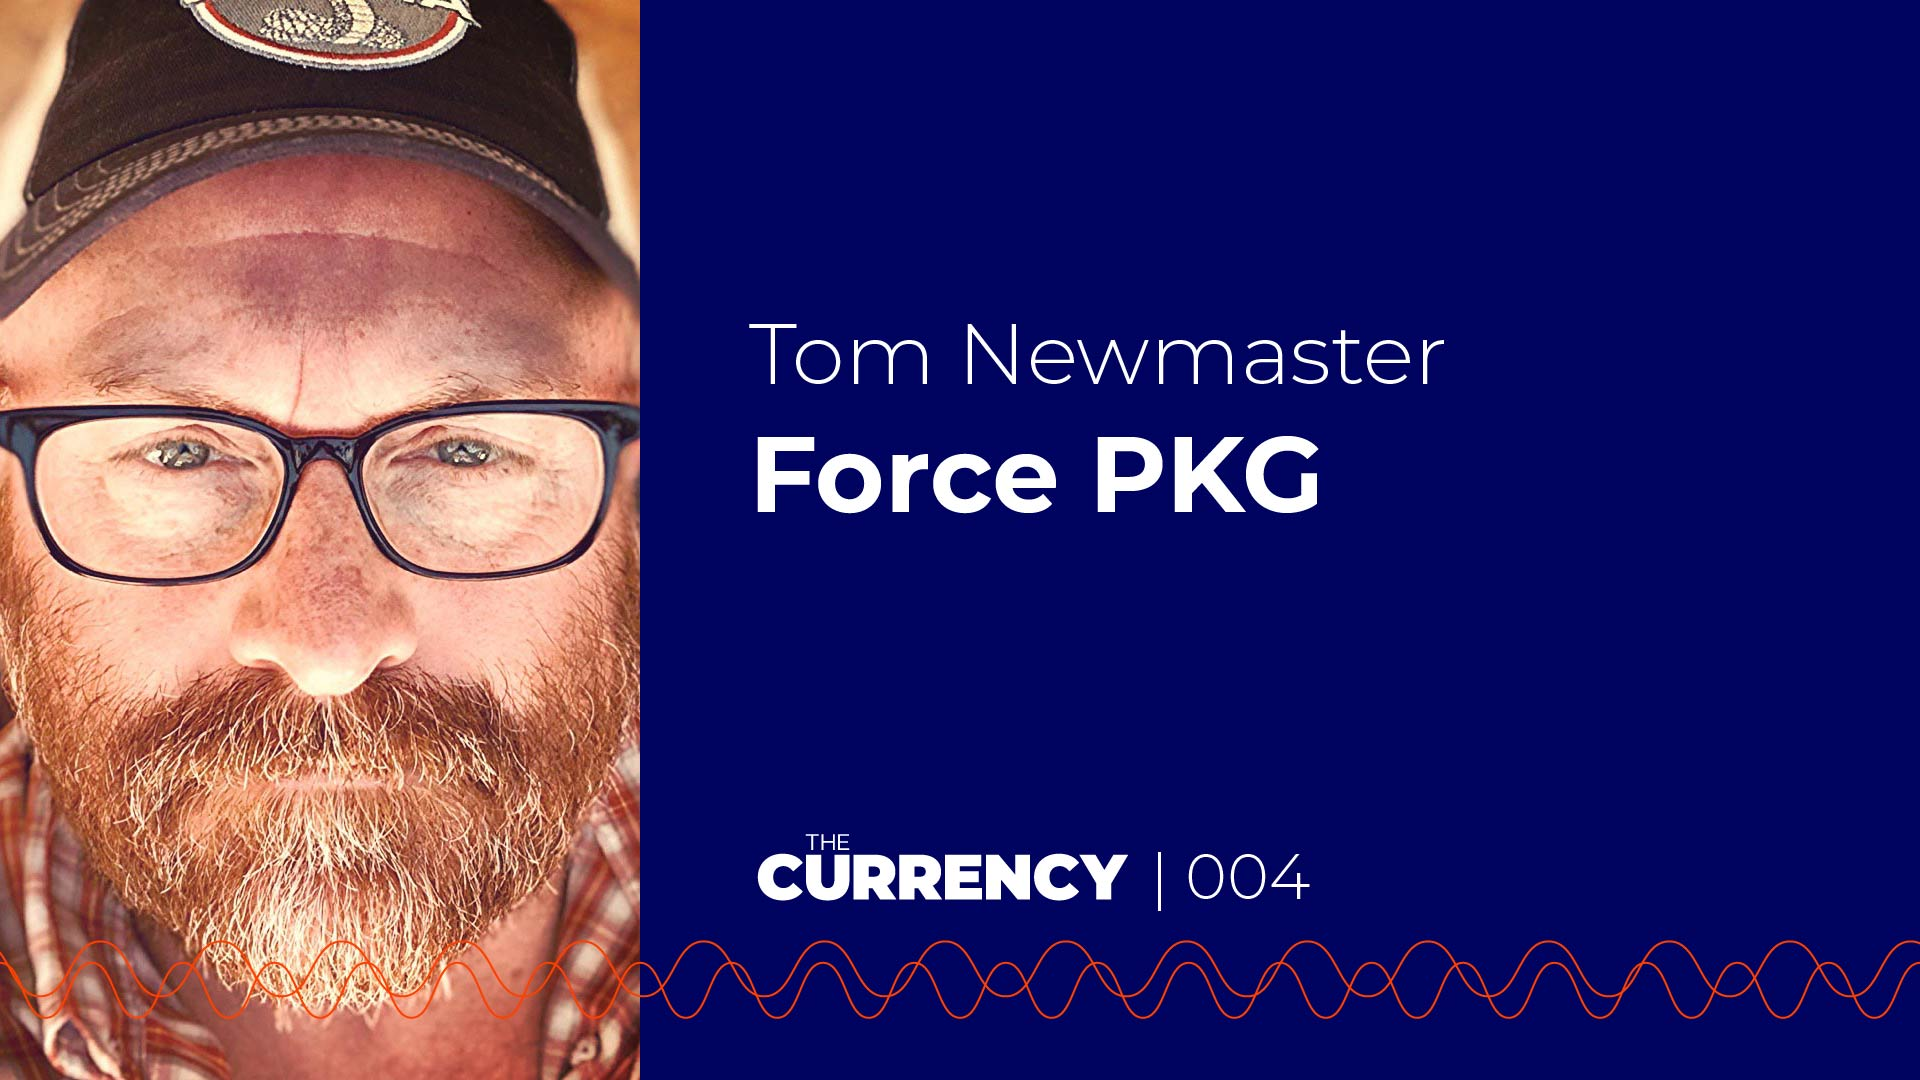 The Currency with Tom Newmaster of Force PKG